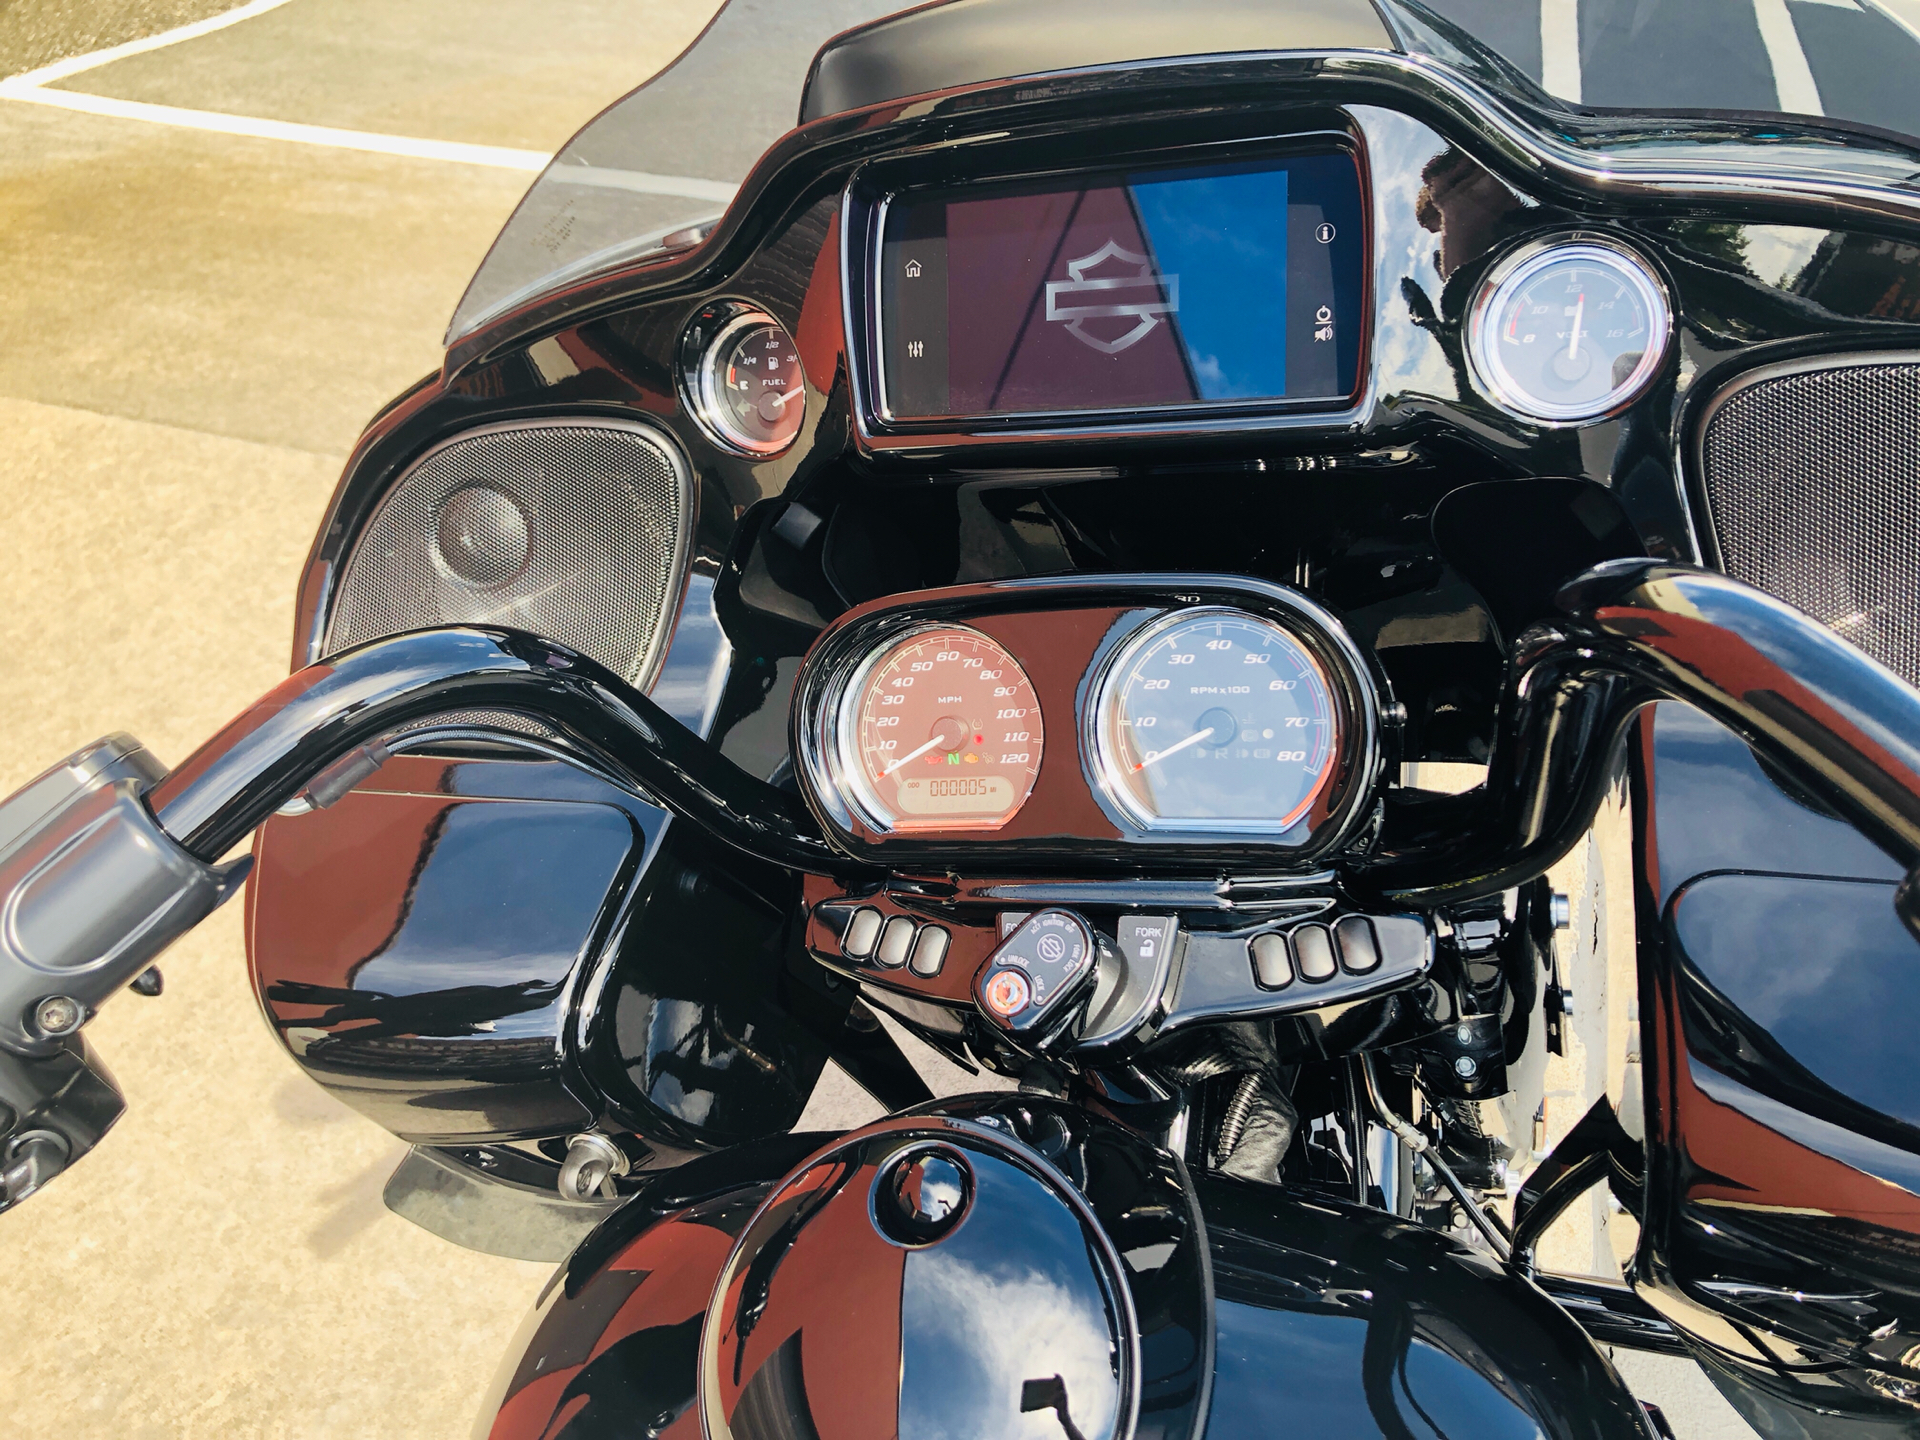 2019 Harley-Davidson Road Glide® Special in Burlington, Washington - Photo 9